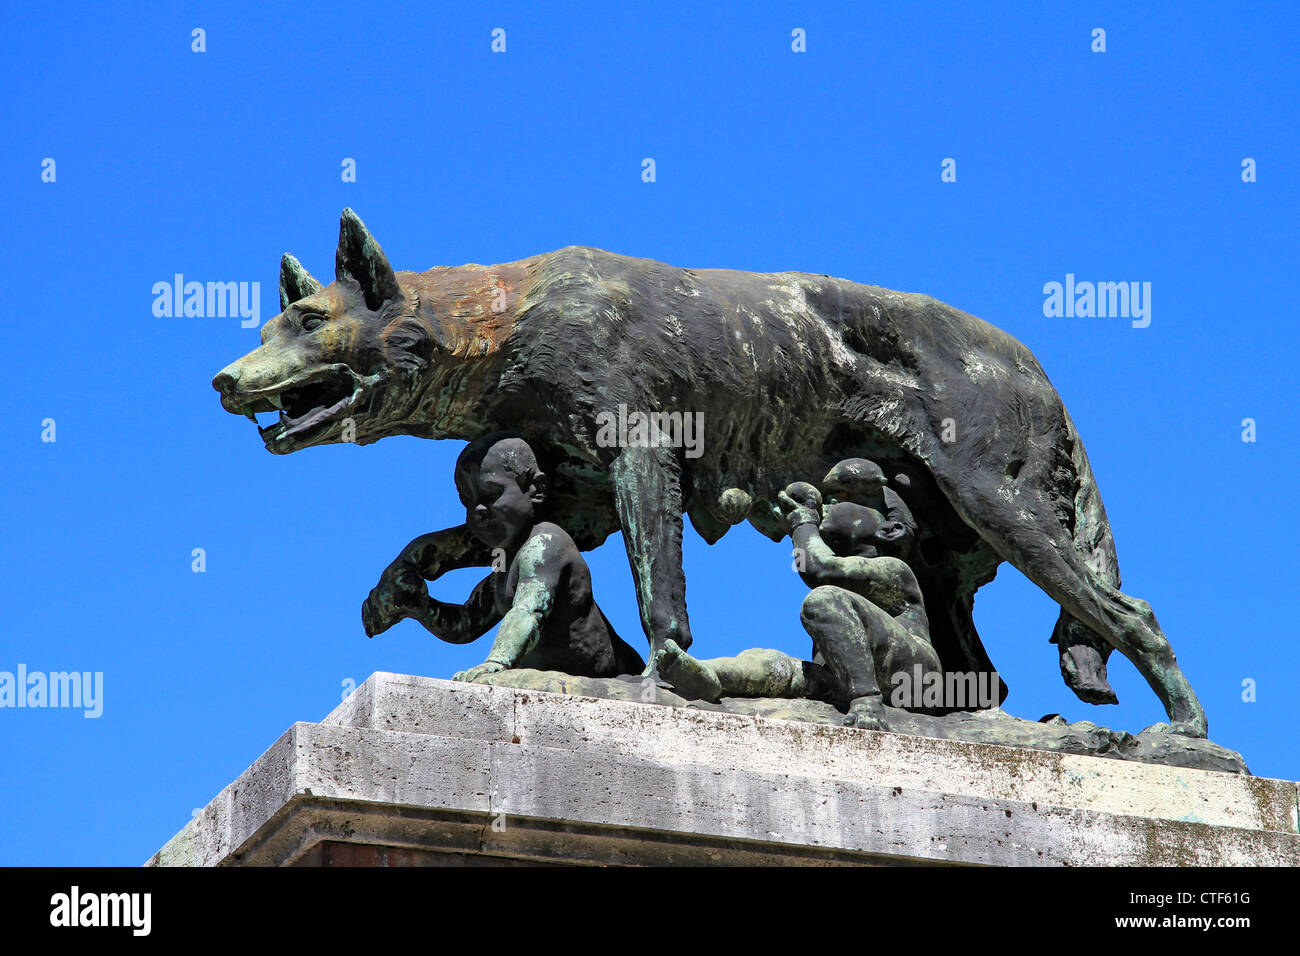 Italy, Tuscany, Siena, she-wolf suckling Romulus and Remus, the city wall - Stock Image